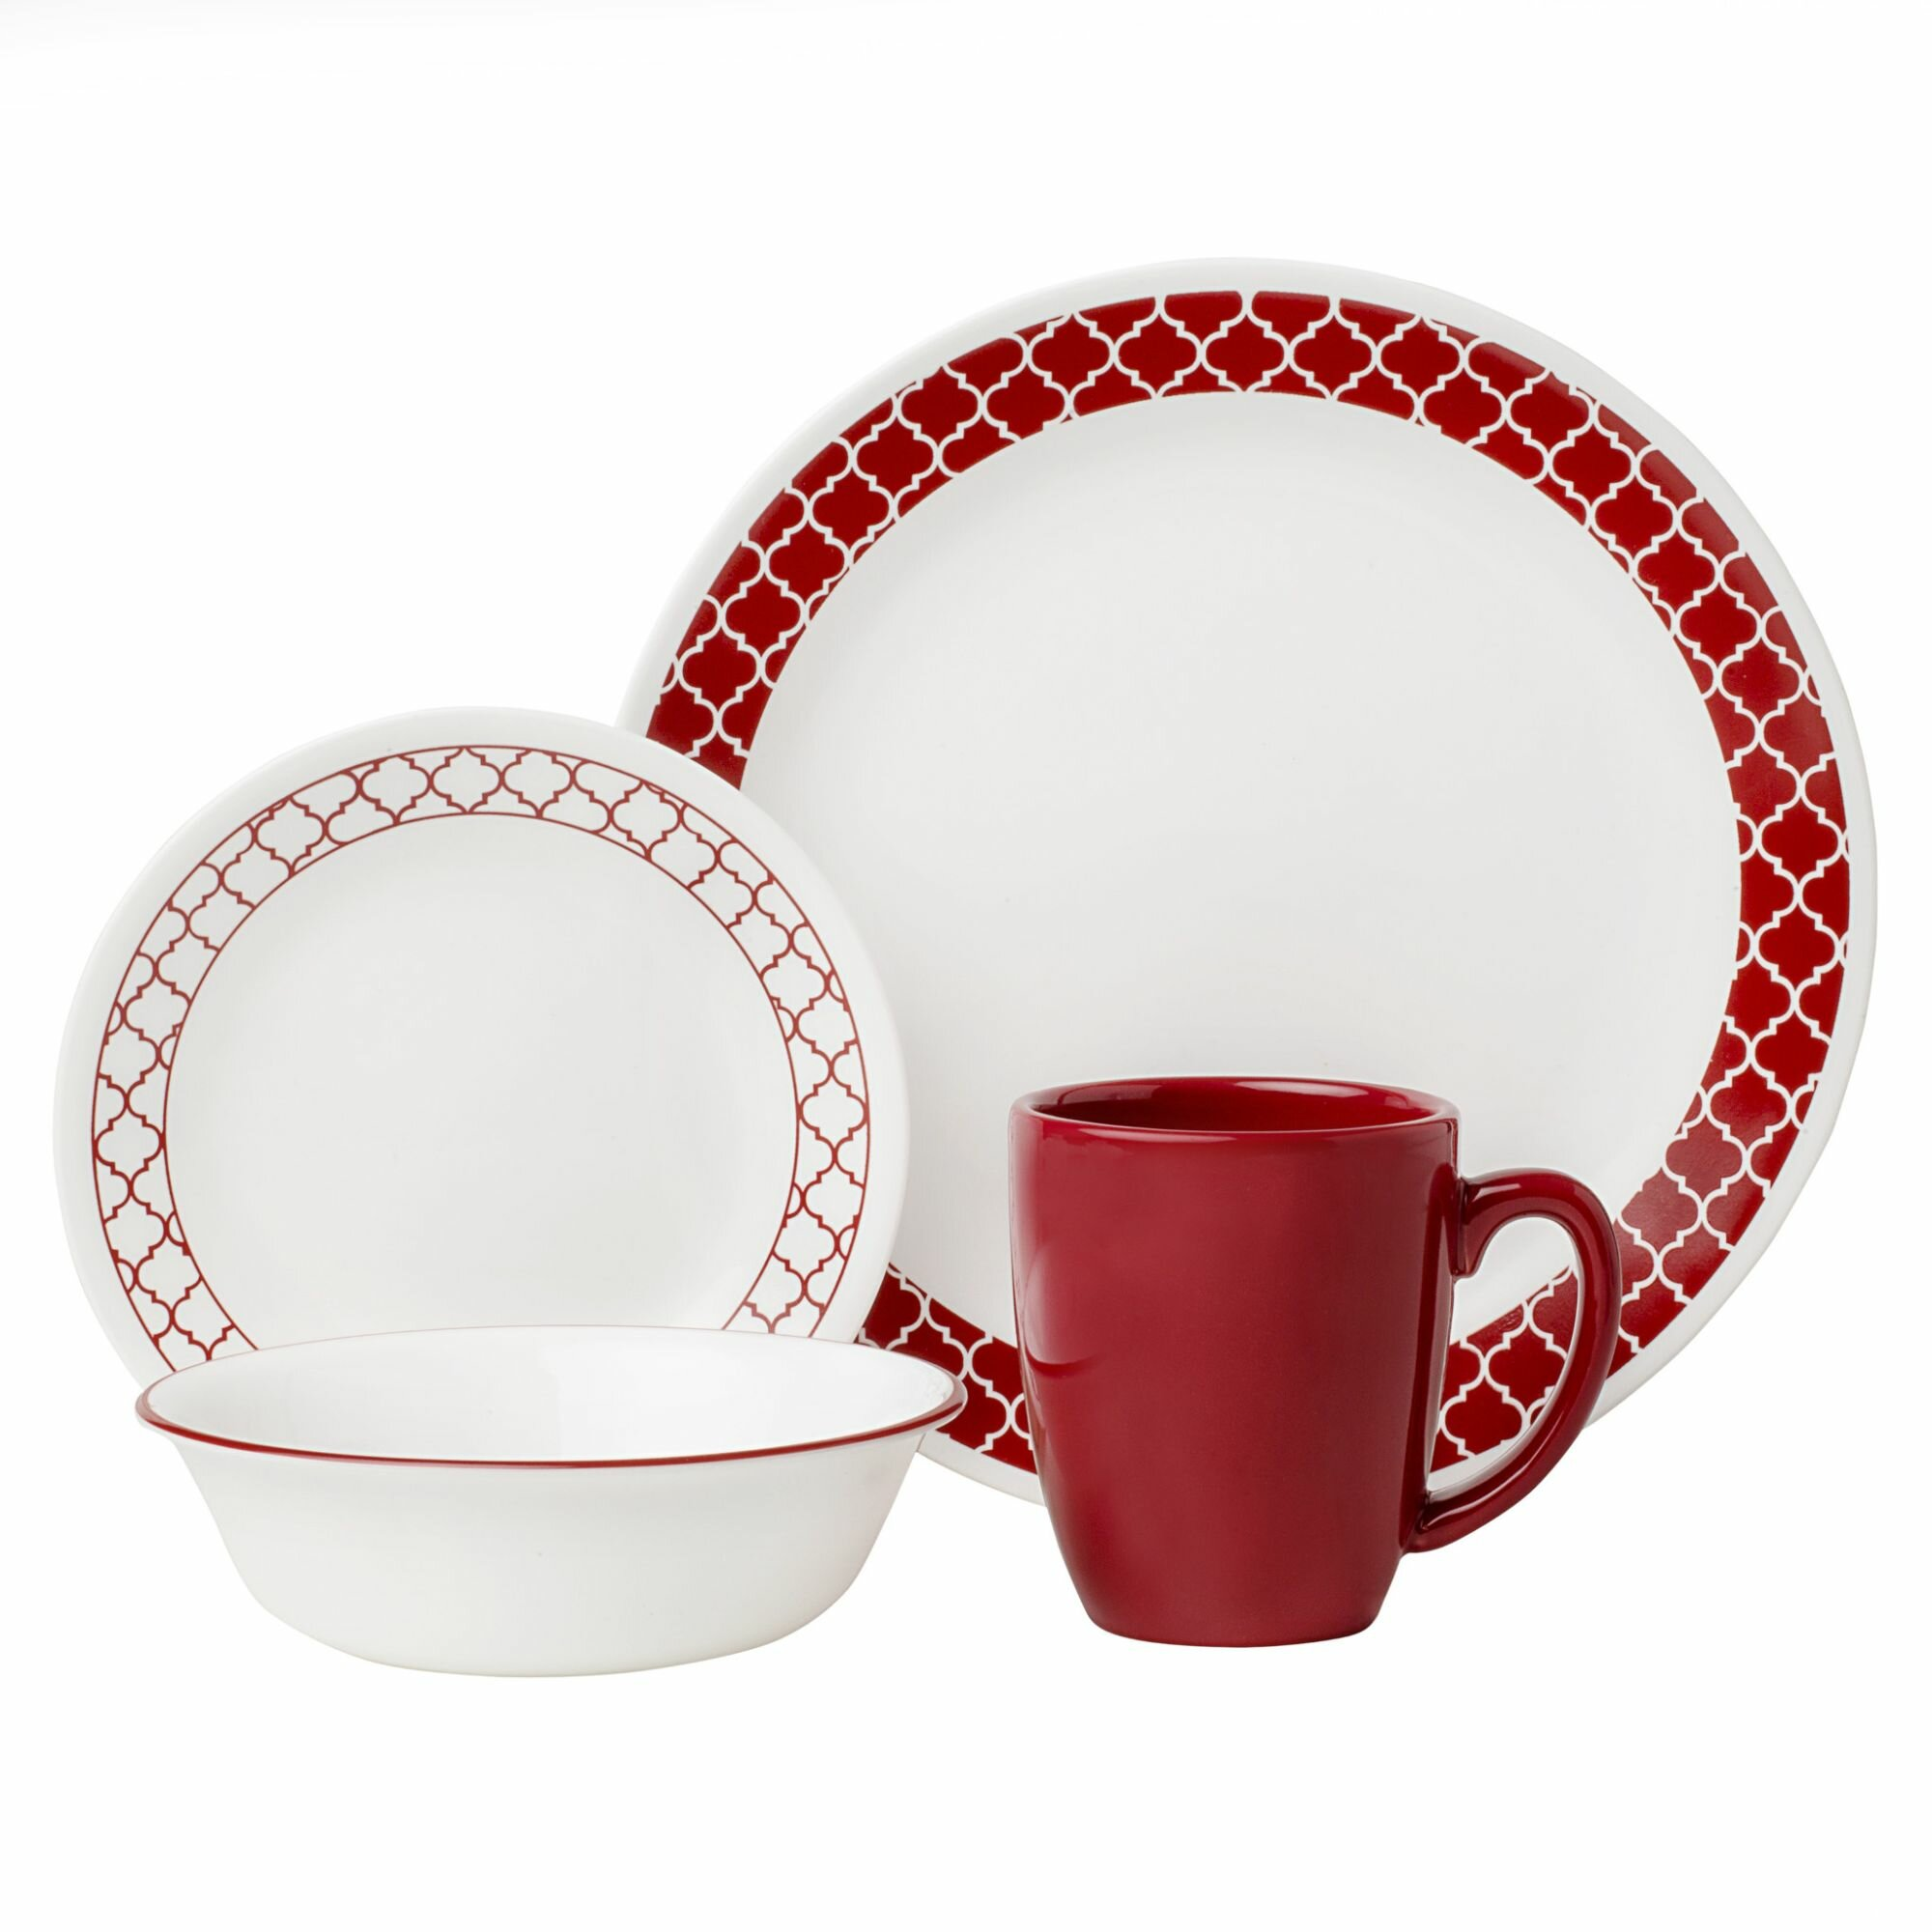 Shop Target for Corelle. For a wide assortment of Corelle visit motingsyti.tk today. Free shipping & returns plus same-day pick-up in store.